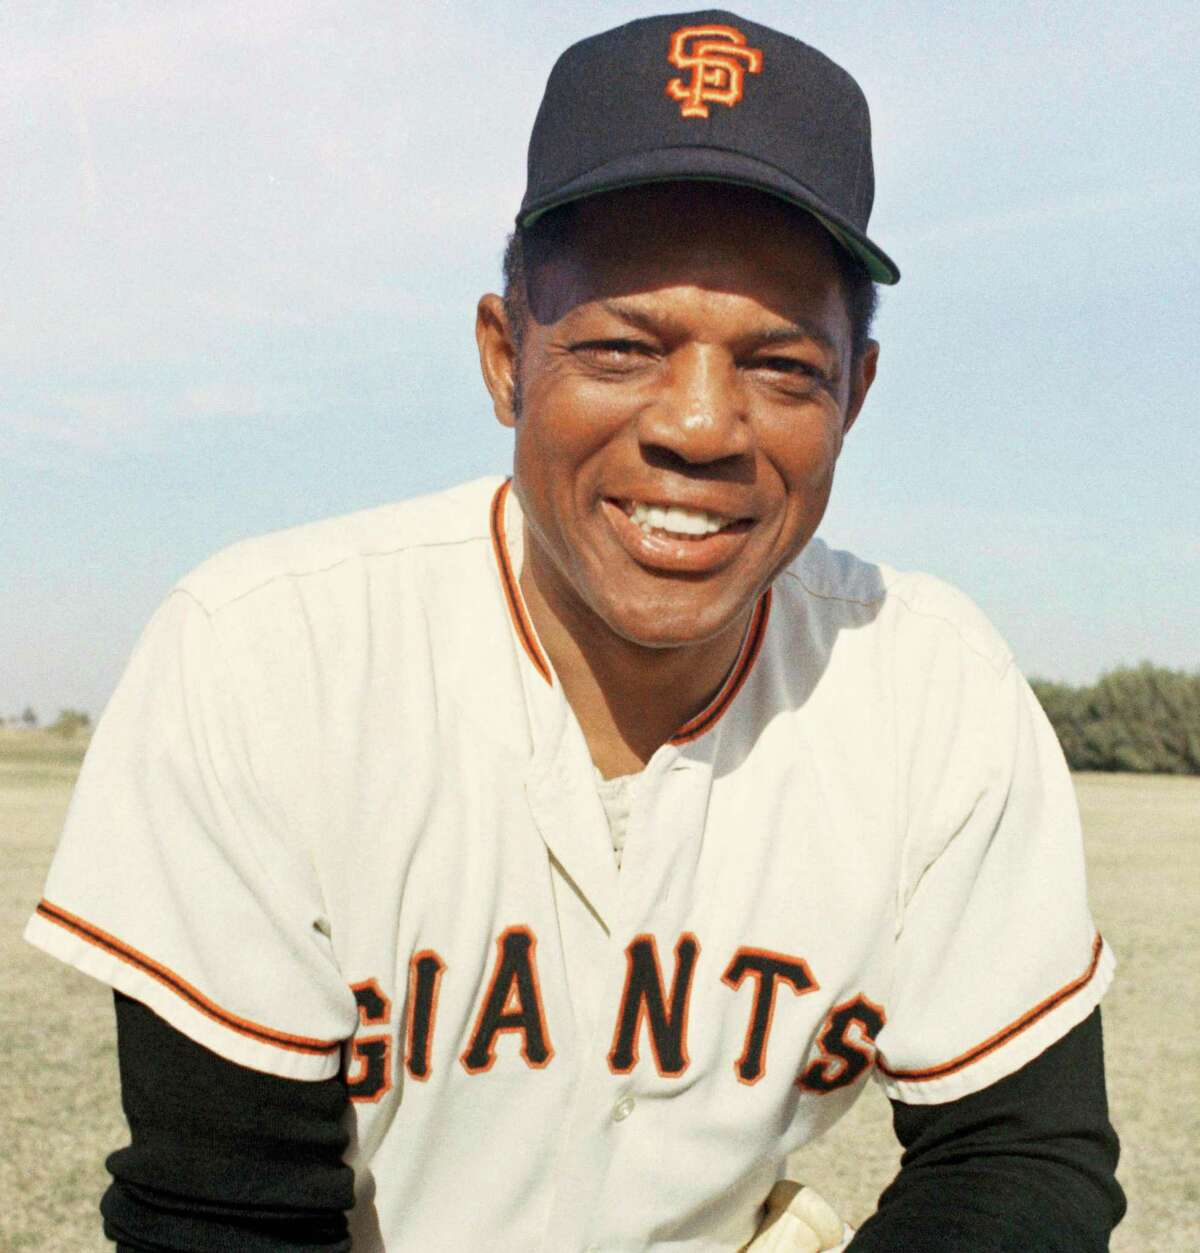 San Francisco Giants Willie Mays poses in 1967. (AP Photo)